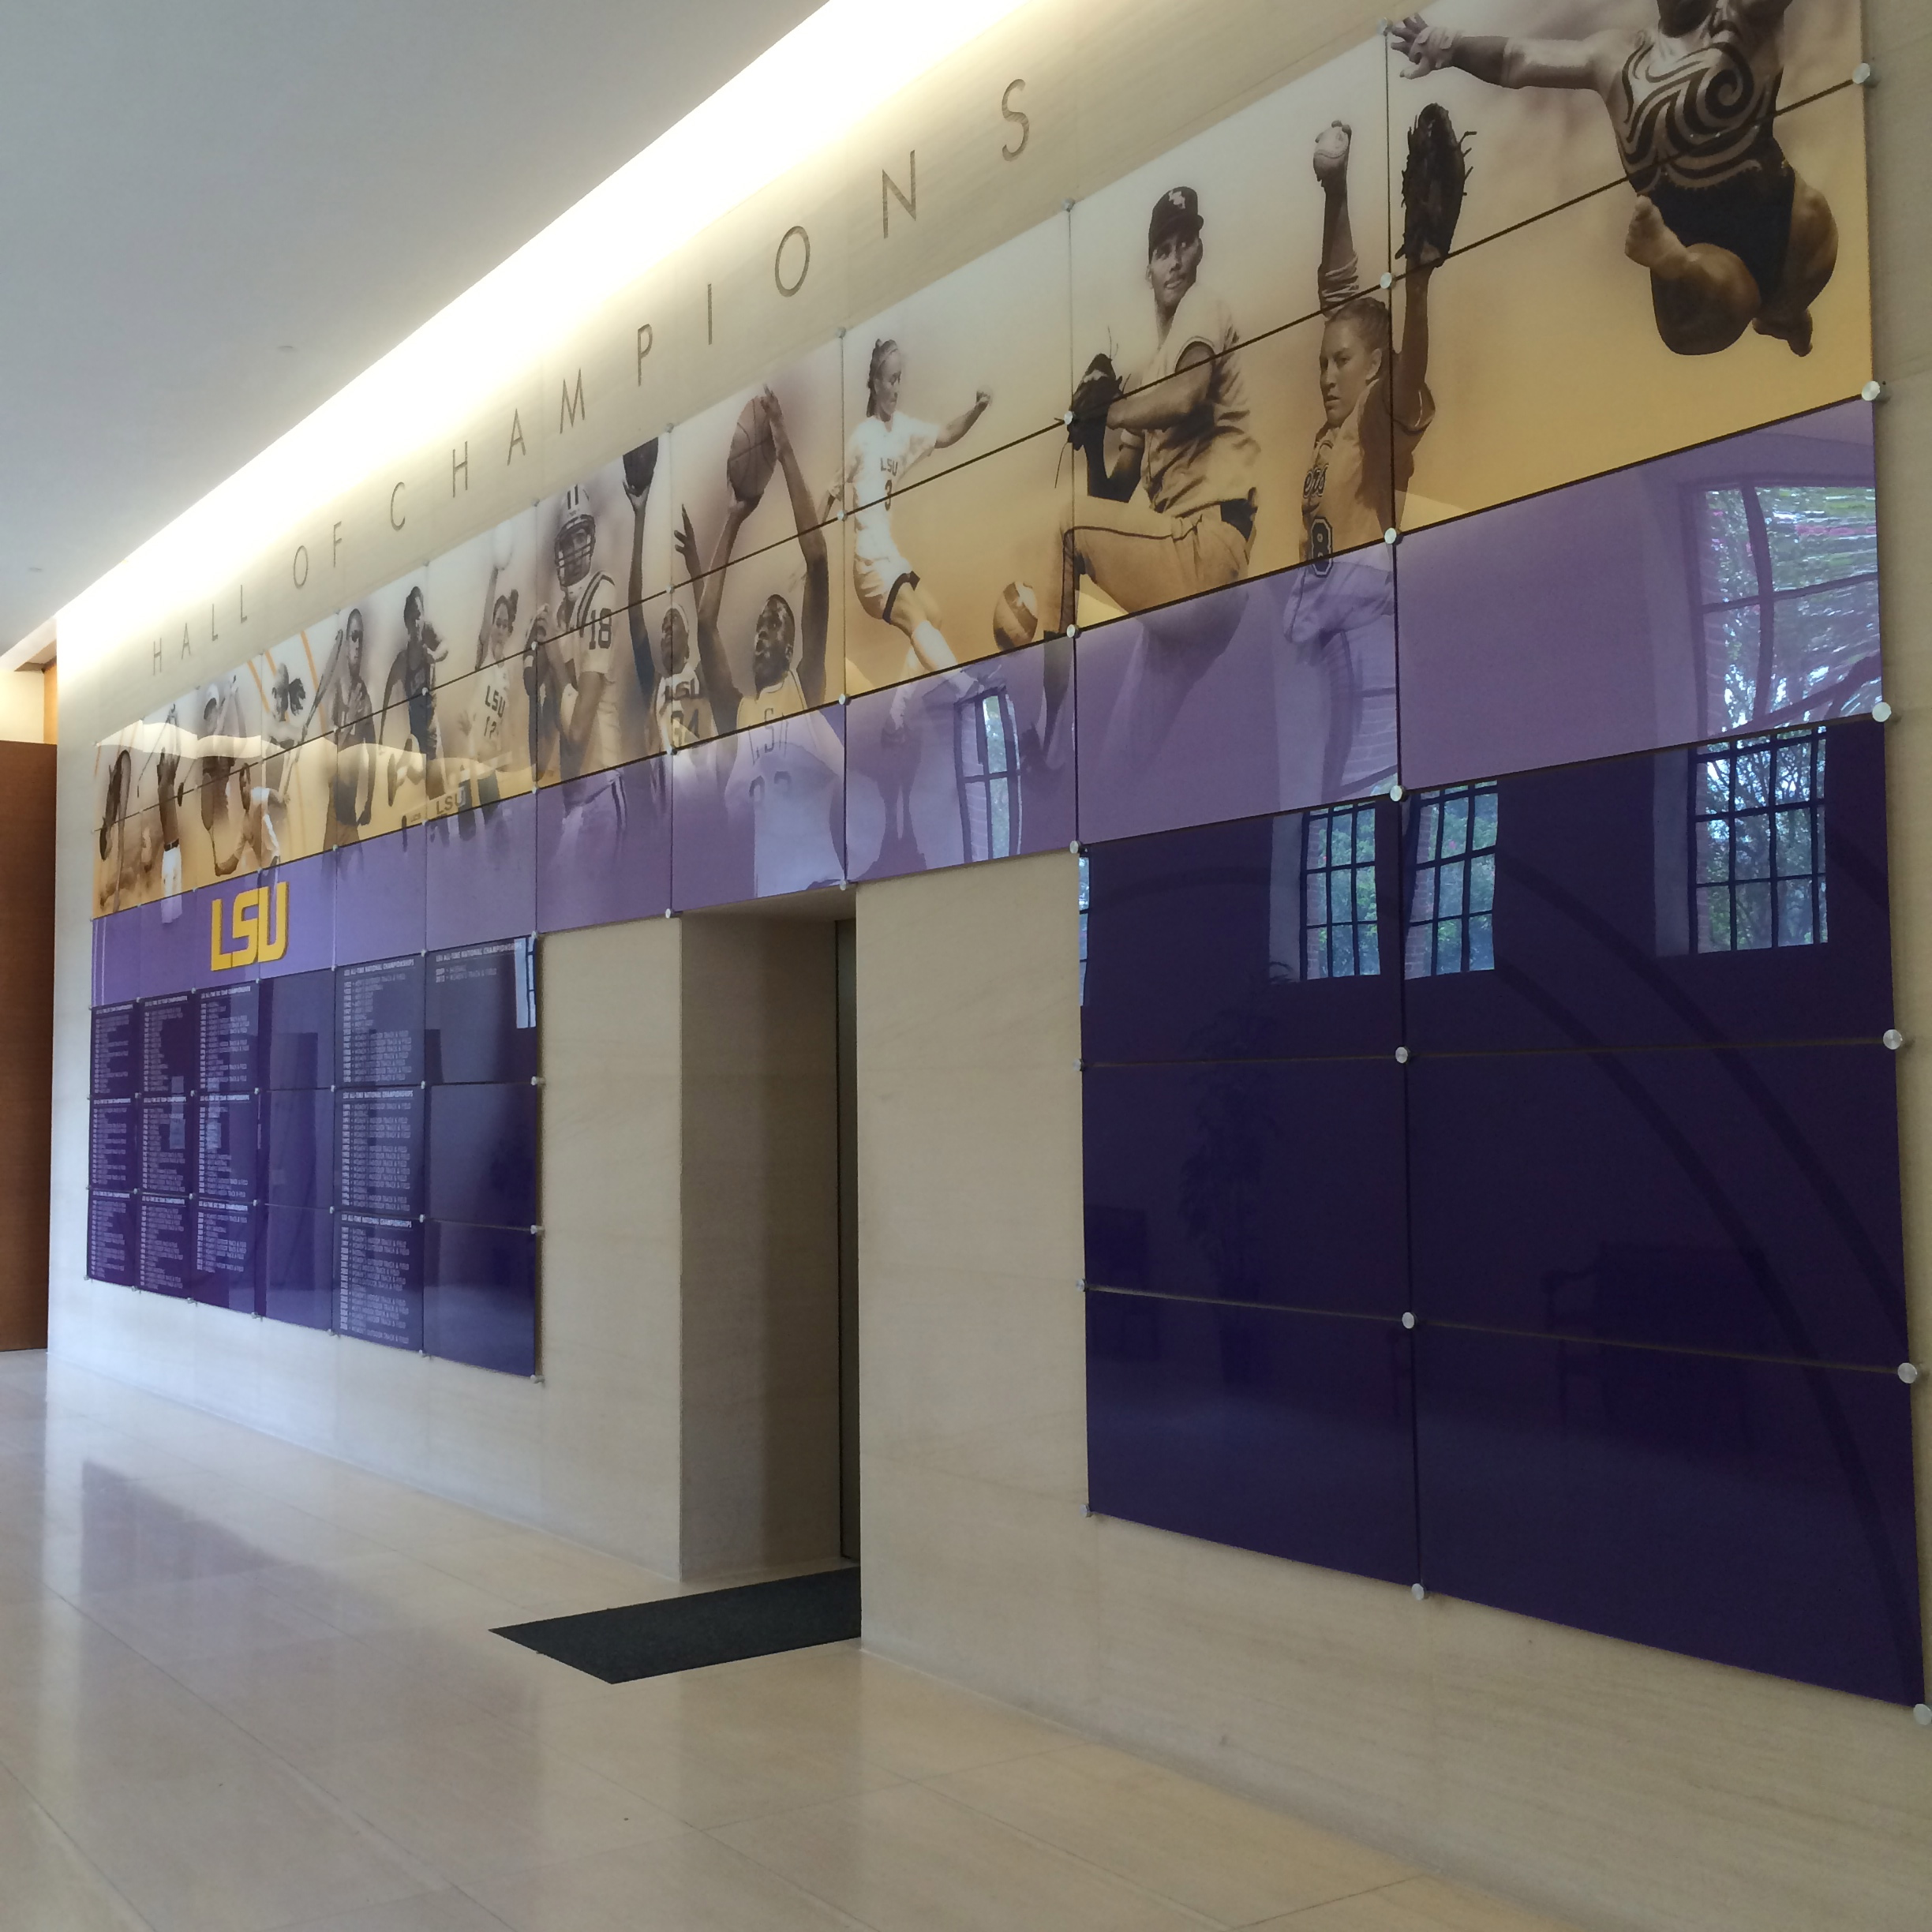 LSU's Hall of Champions in the Cox Communications Academic Center for Student-Athletes